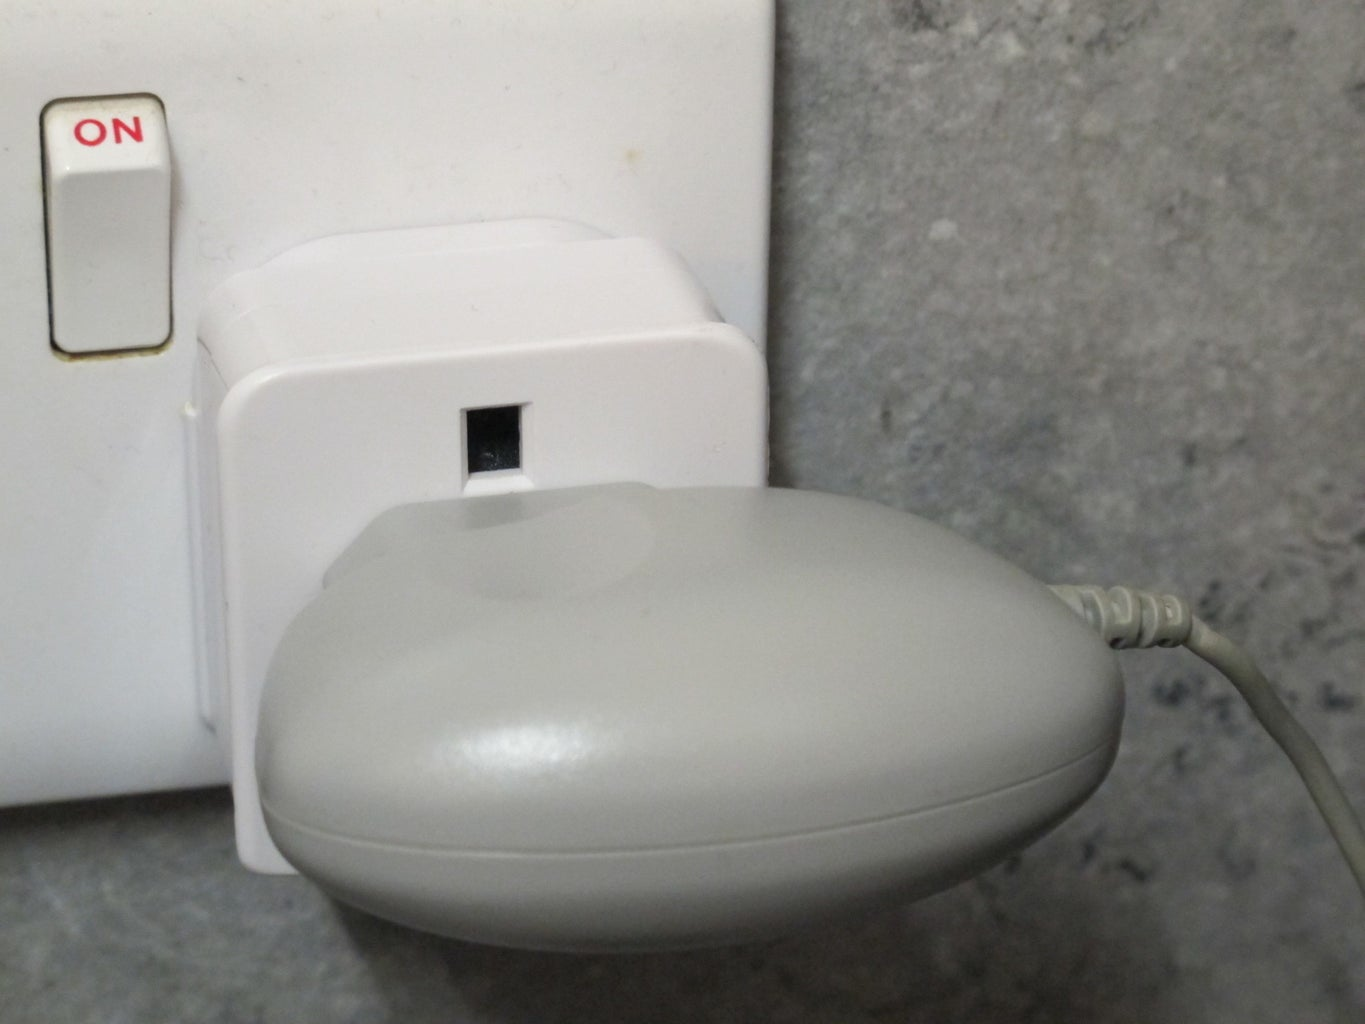 Old Phone Charger